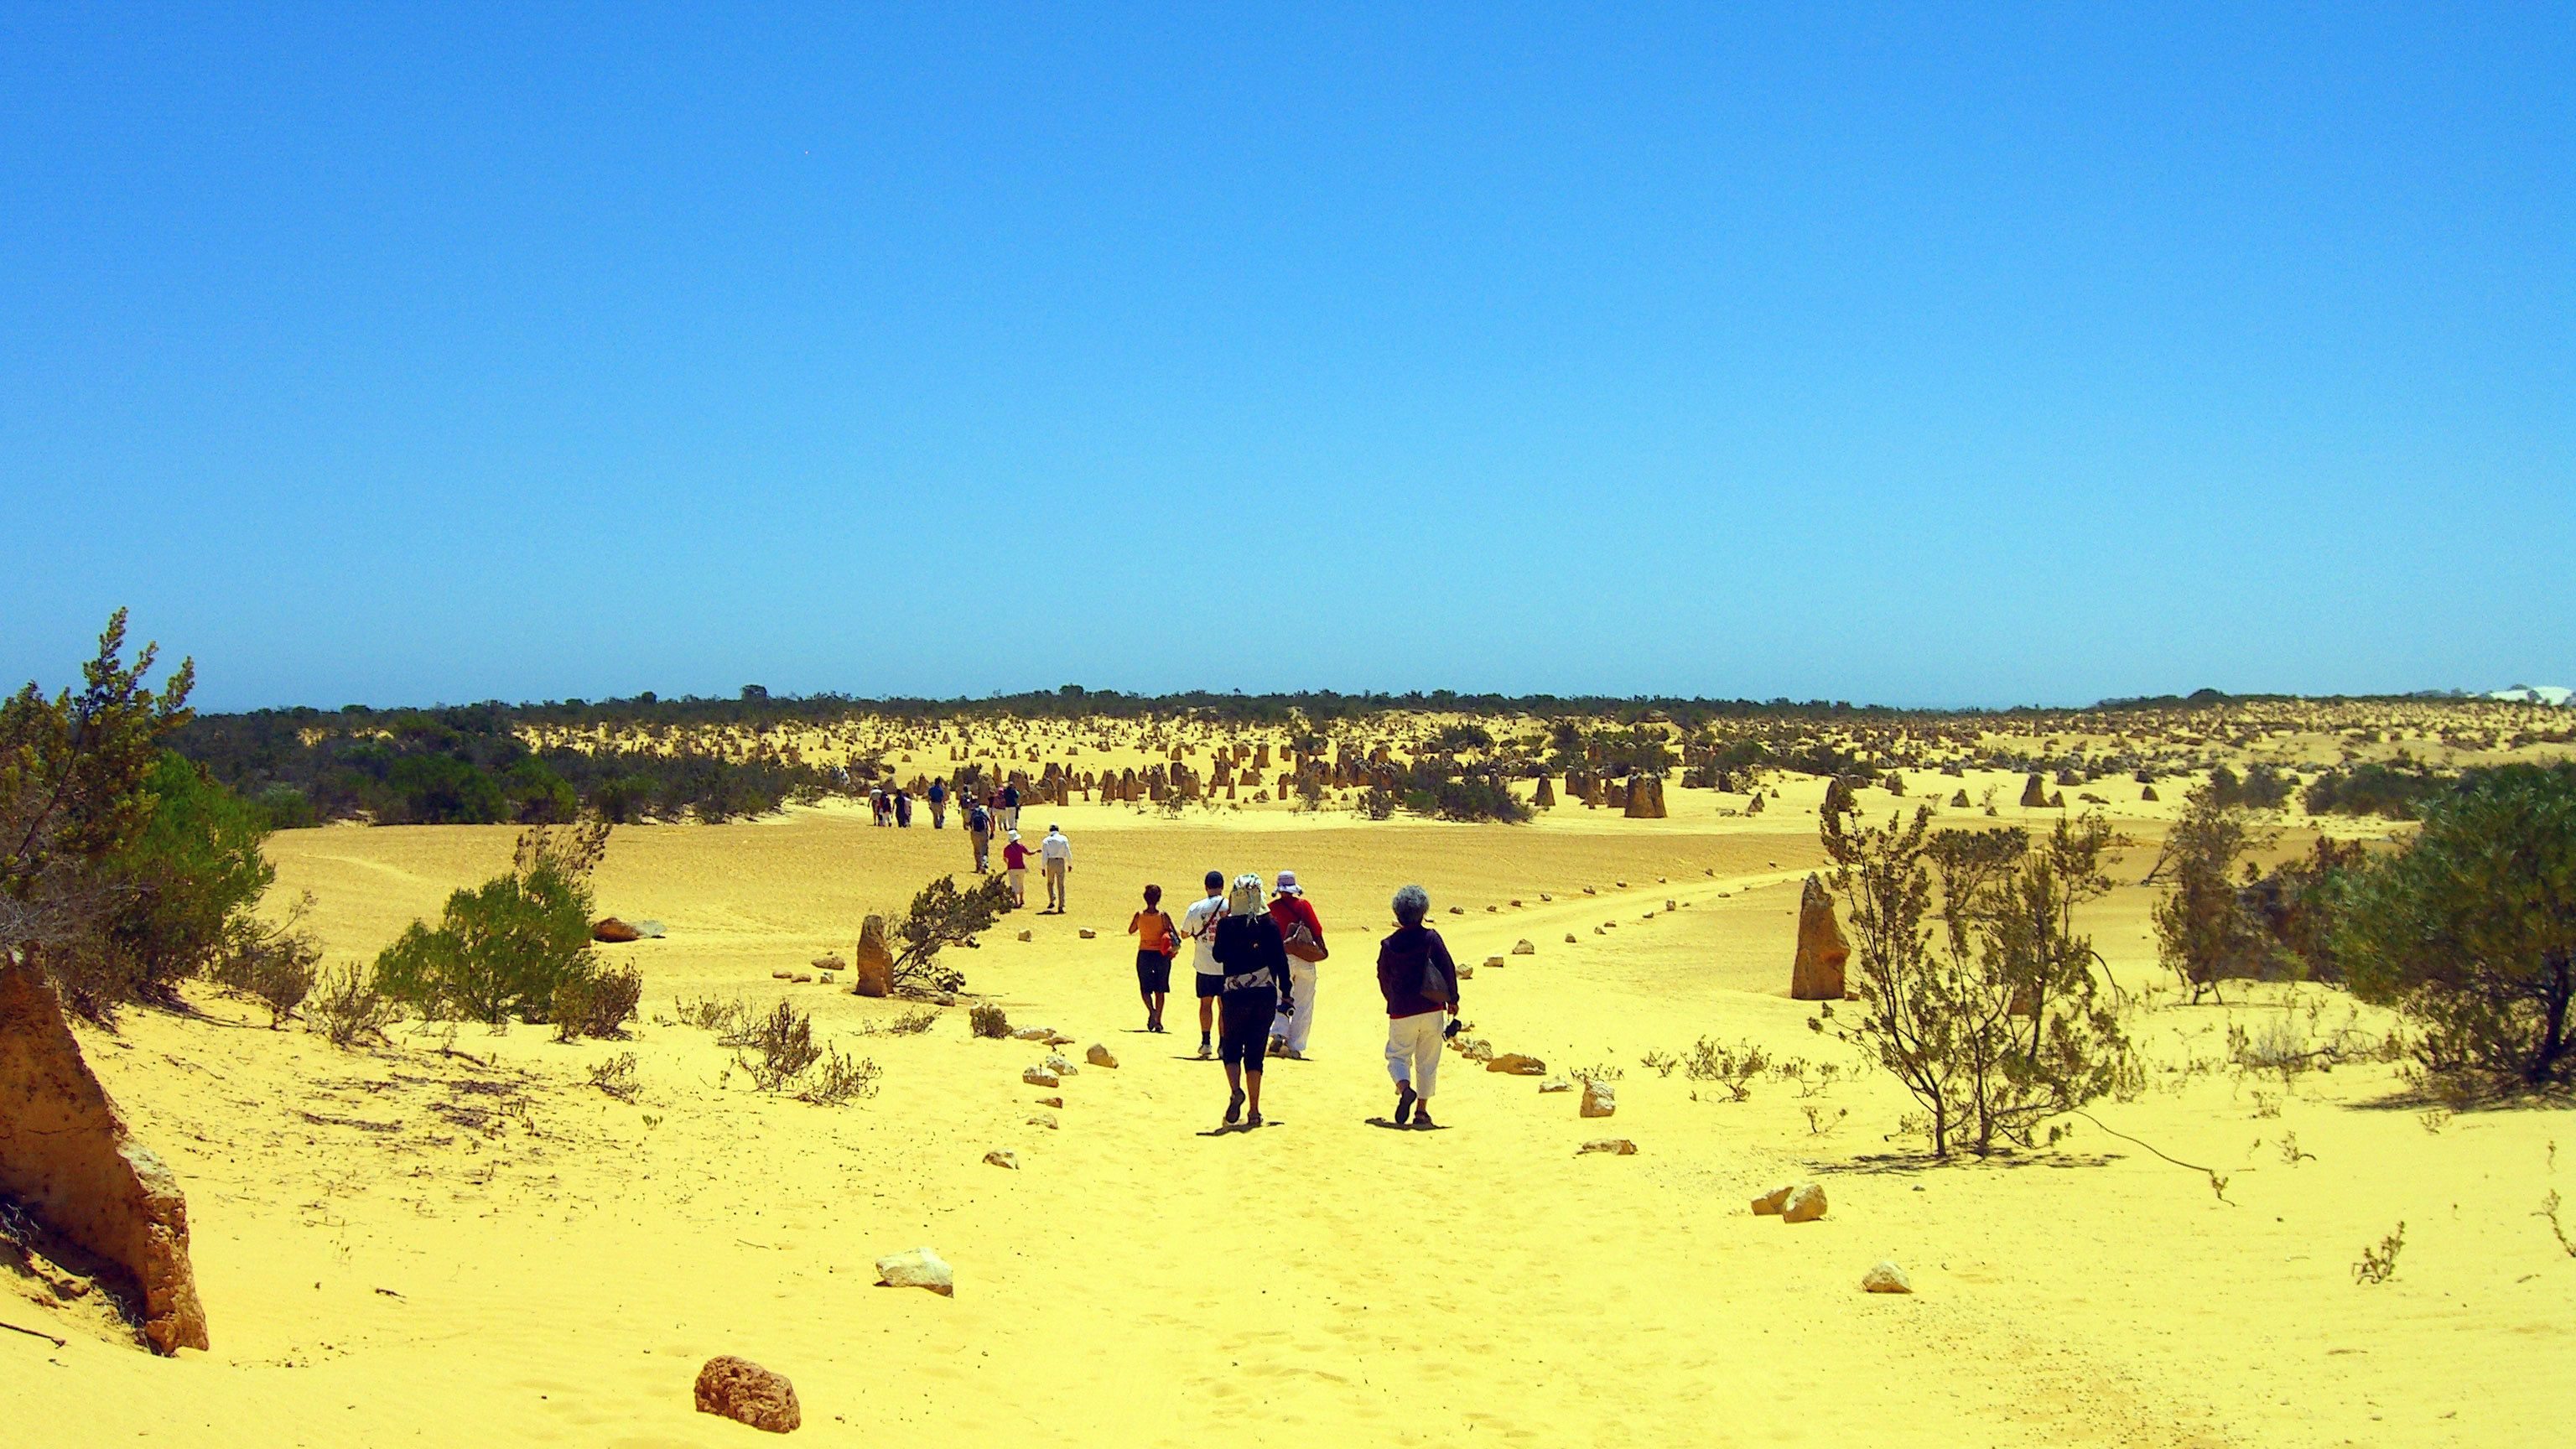 A small group of people walking along a path in the Pinnacles desert